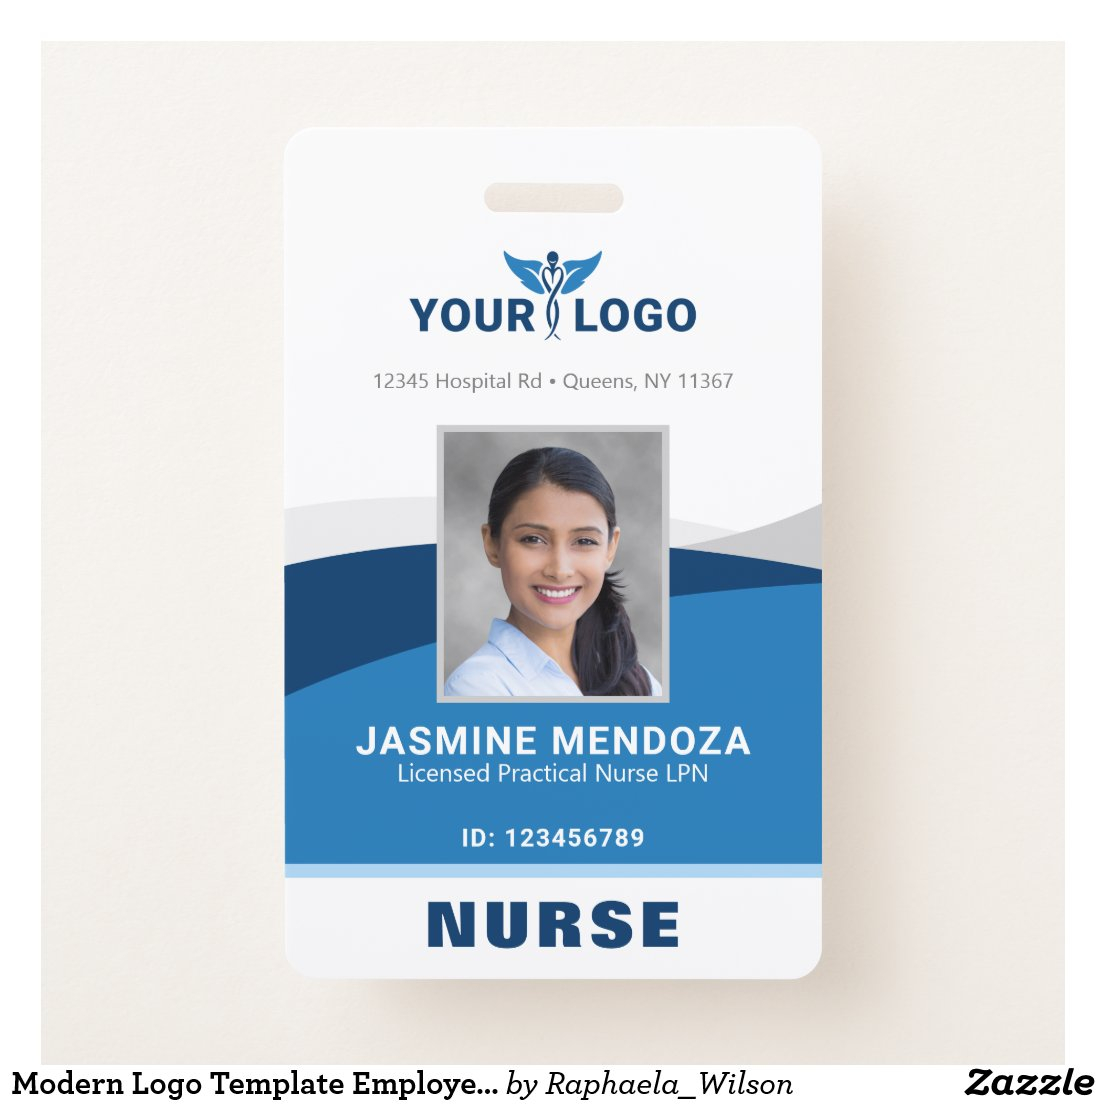 Employee Badges Template Custom Photo ID Cards For Hospital Id Card Template With Hospital Id Card Template